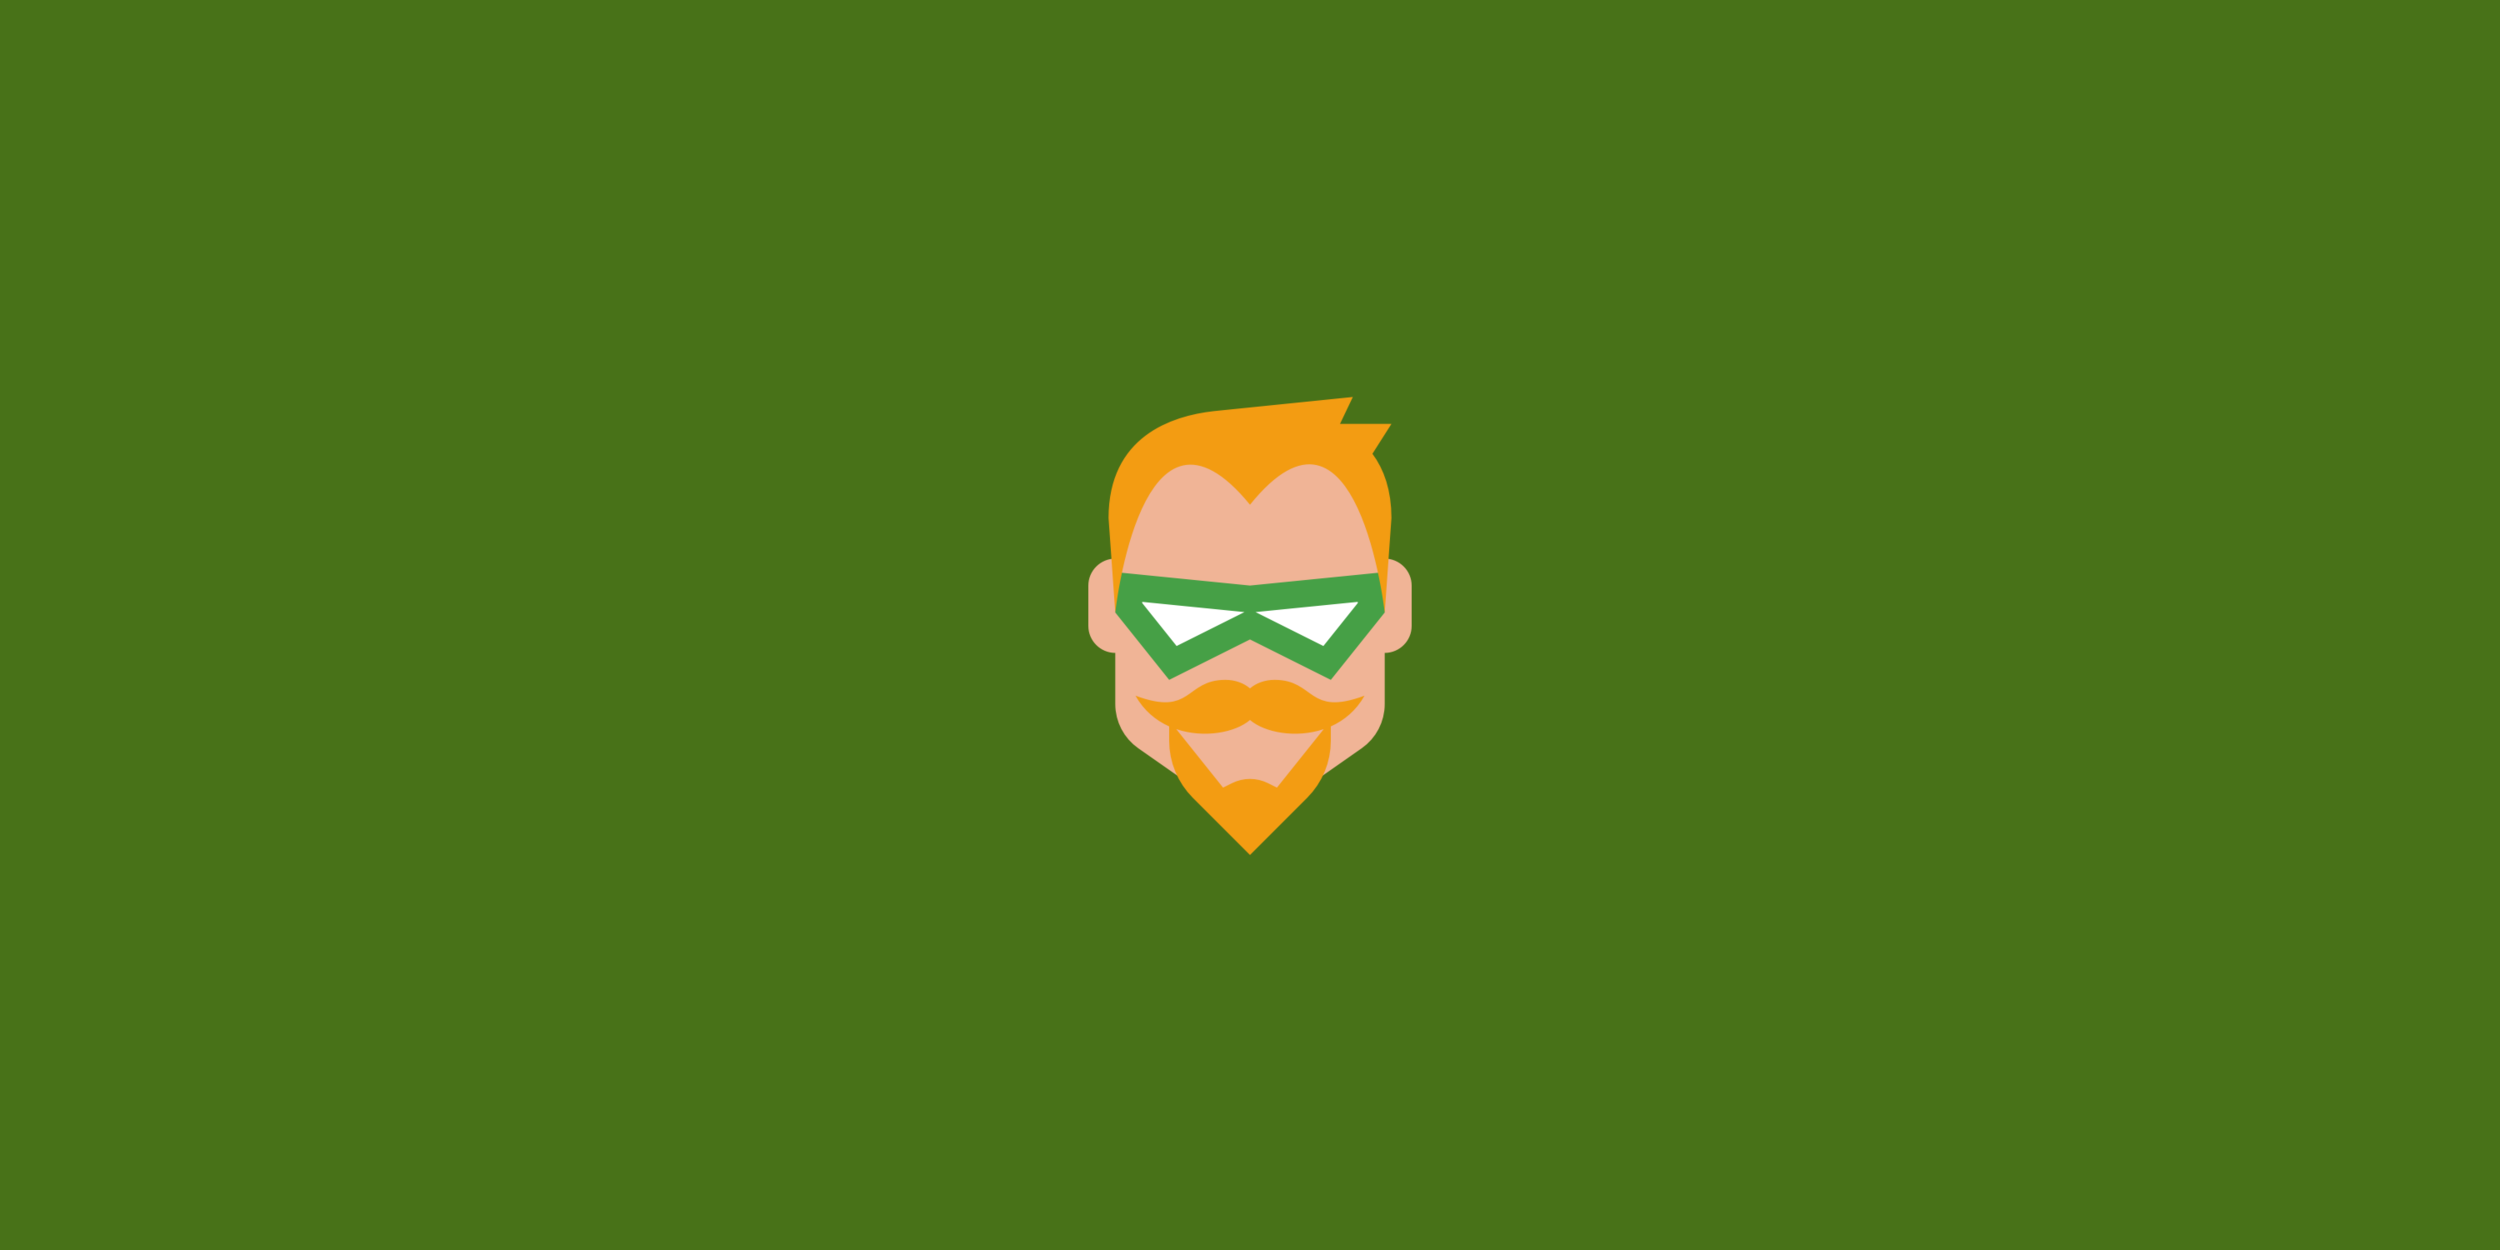 Green Arrow Icon